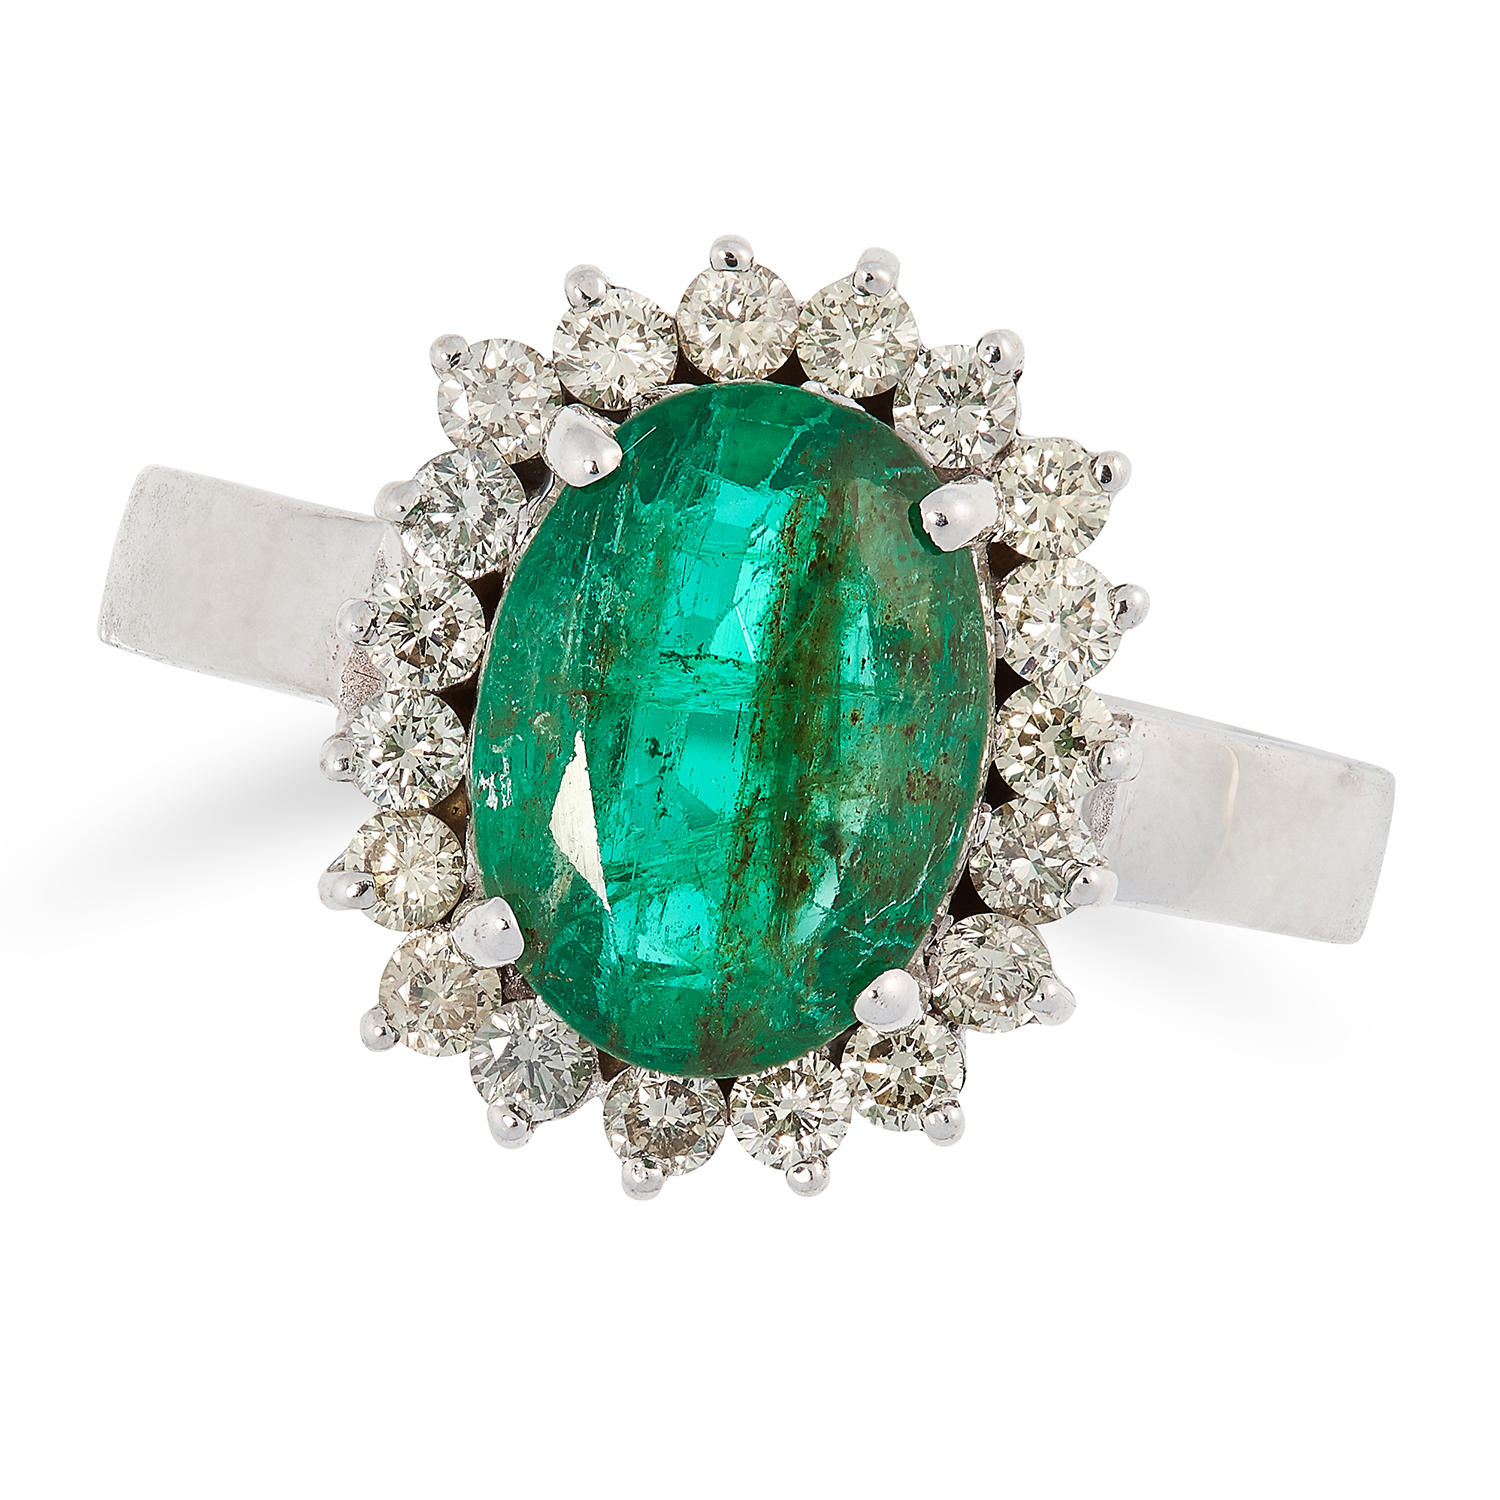 EMERALD AND DIAMOND CLUSTER RING set with an oval cut emerald in a cluster of round cut diamonds,